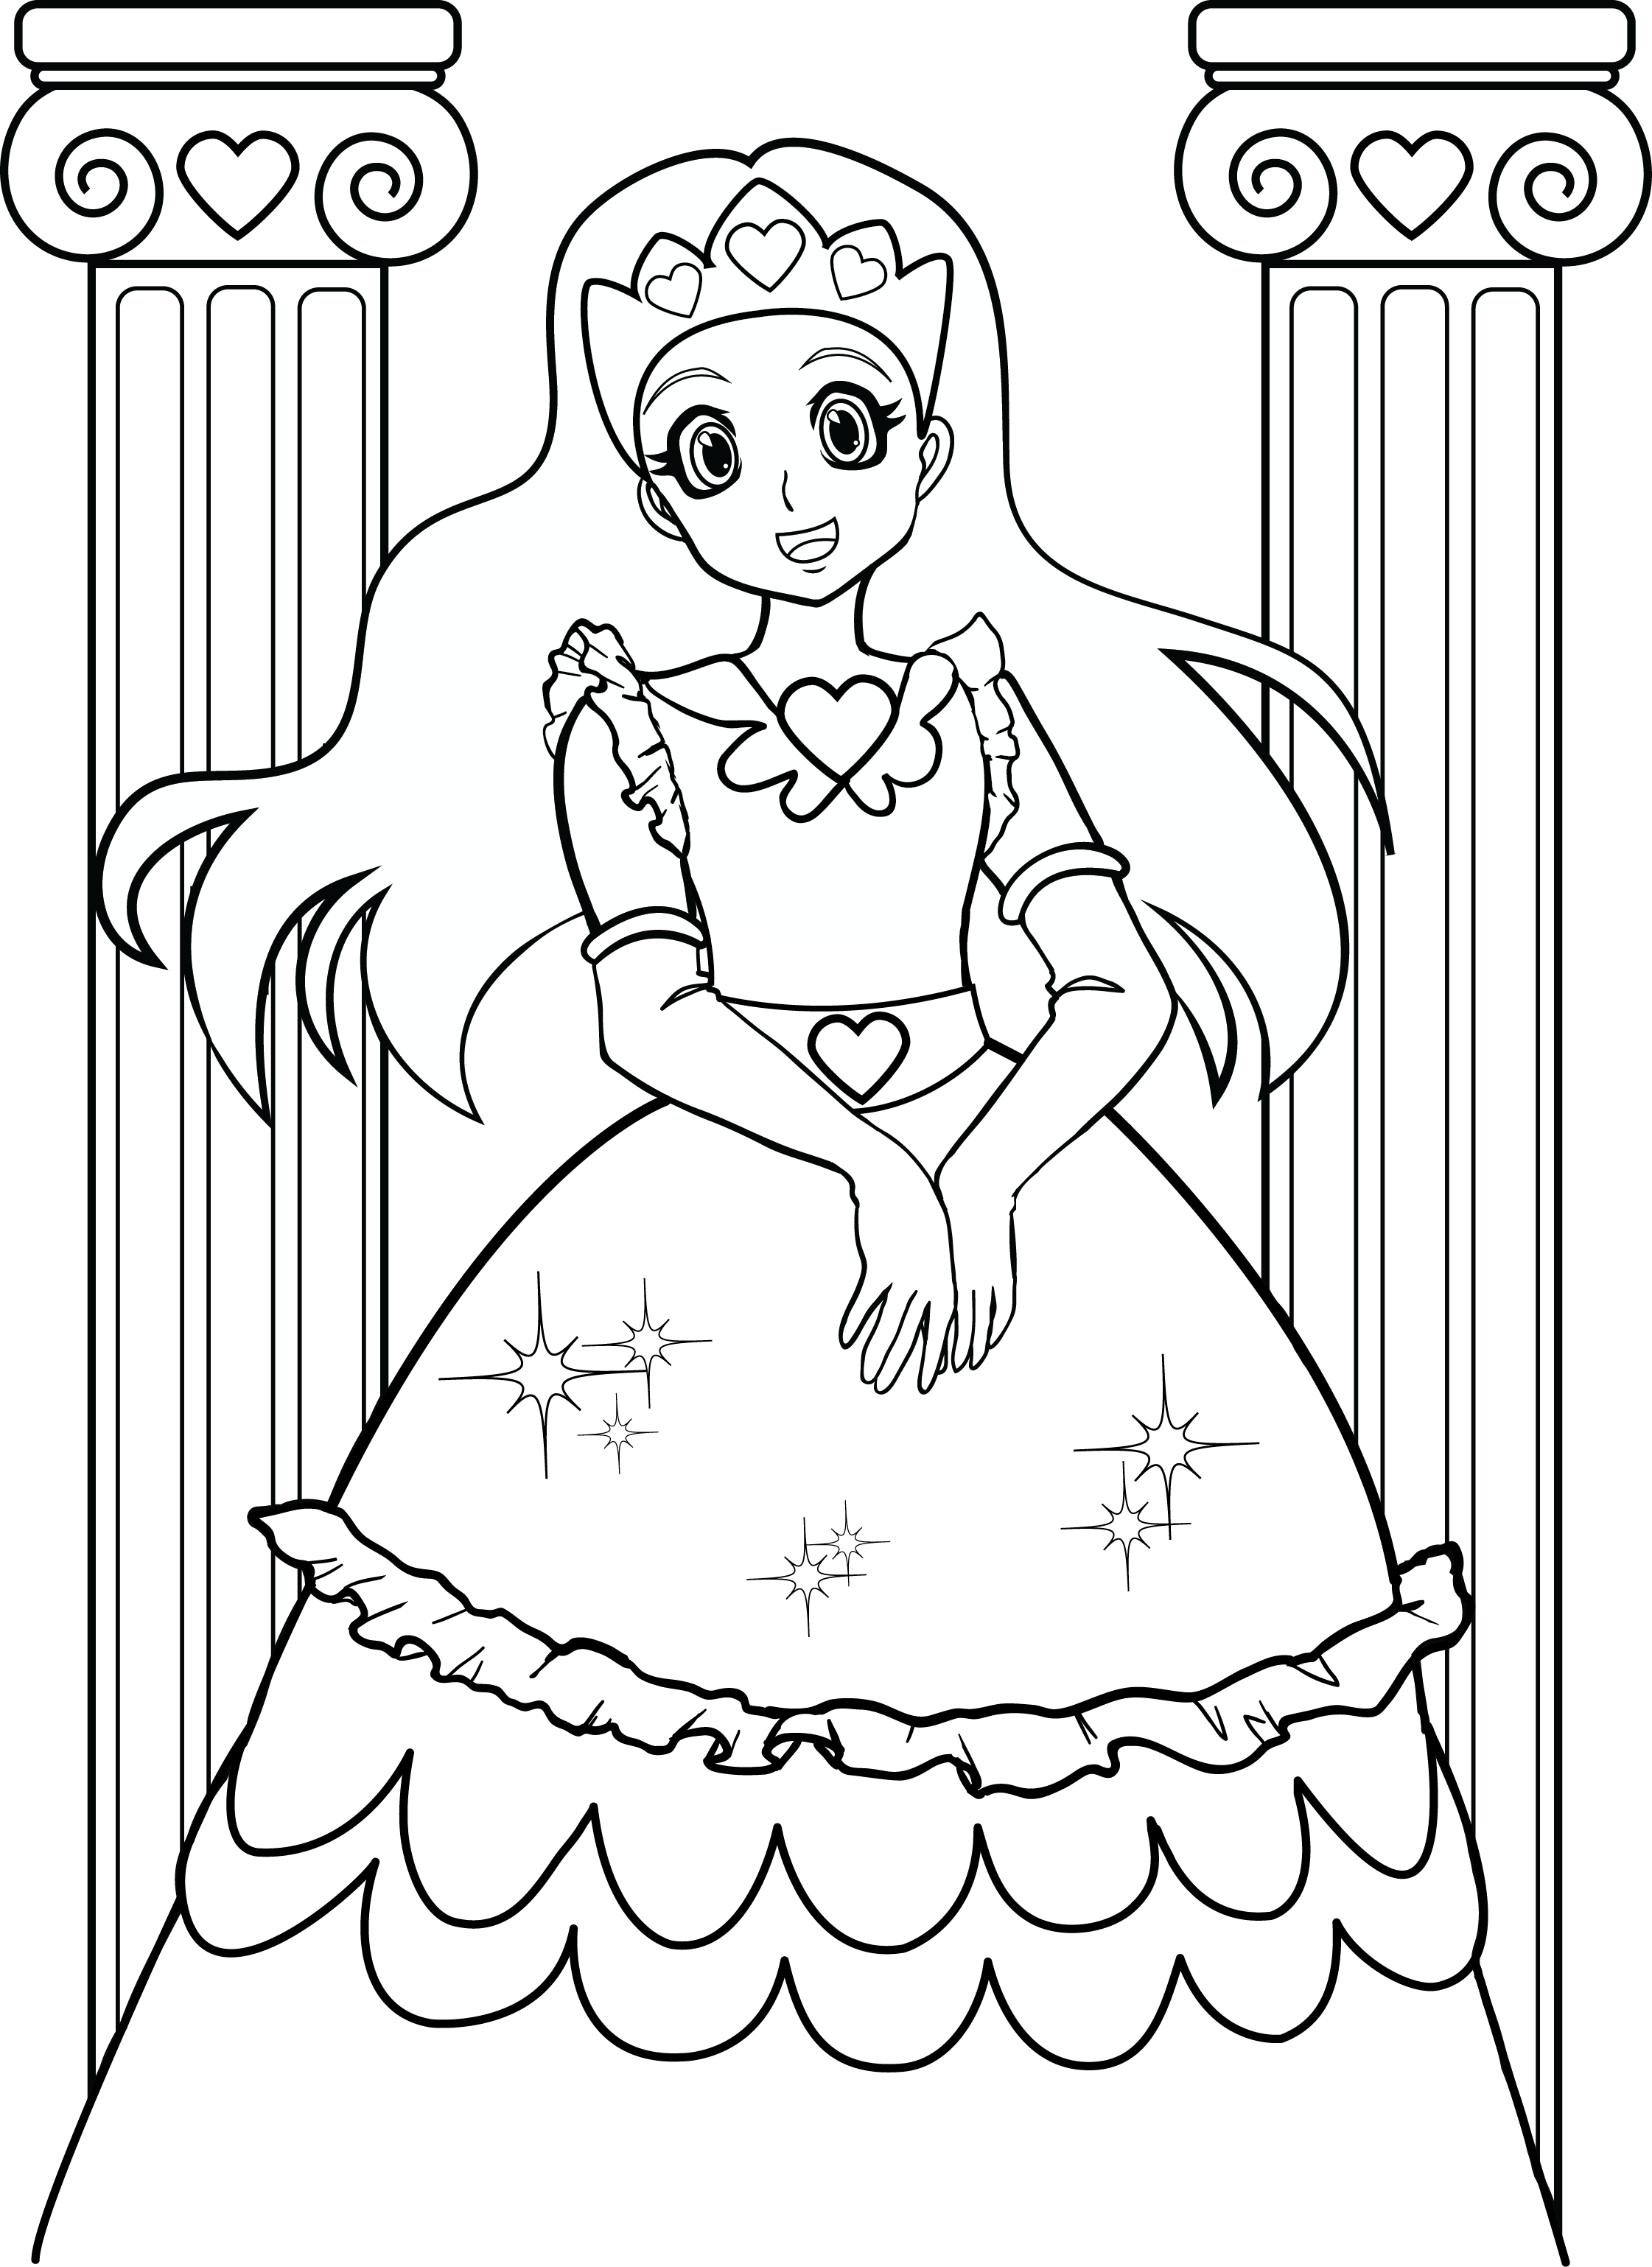 Coloring Pages For Girls 7 Coloring Kids